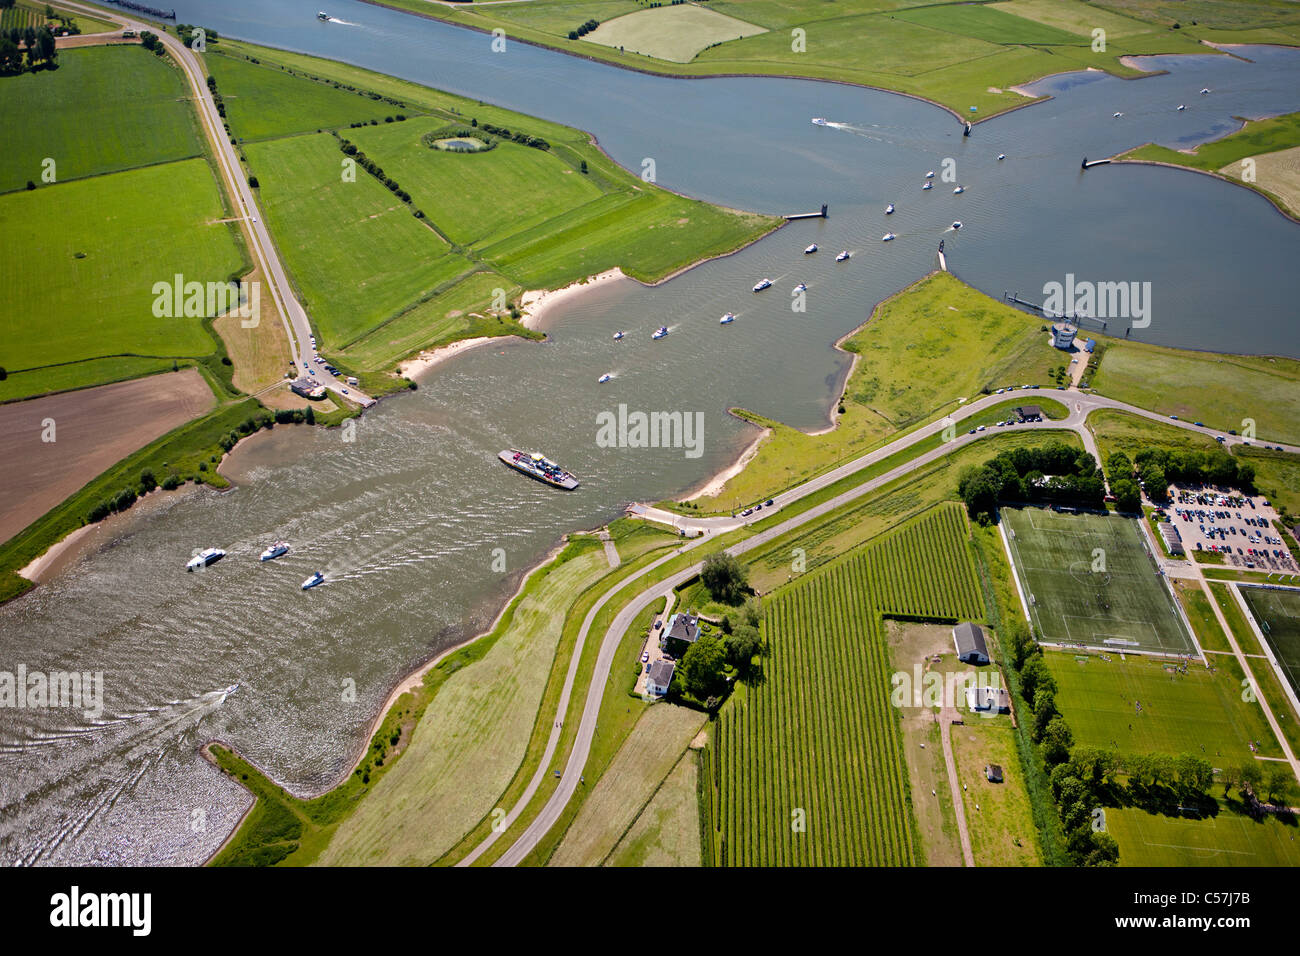 The Netherlands, Wijk bij Duurstede, Pleasure boats and yachts. in river called Waal, also called Lek. Aerial. Ferry - Stock Image